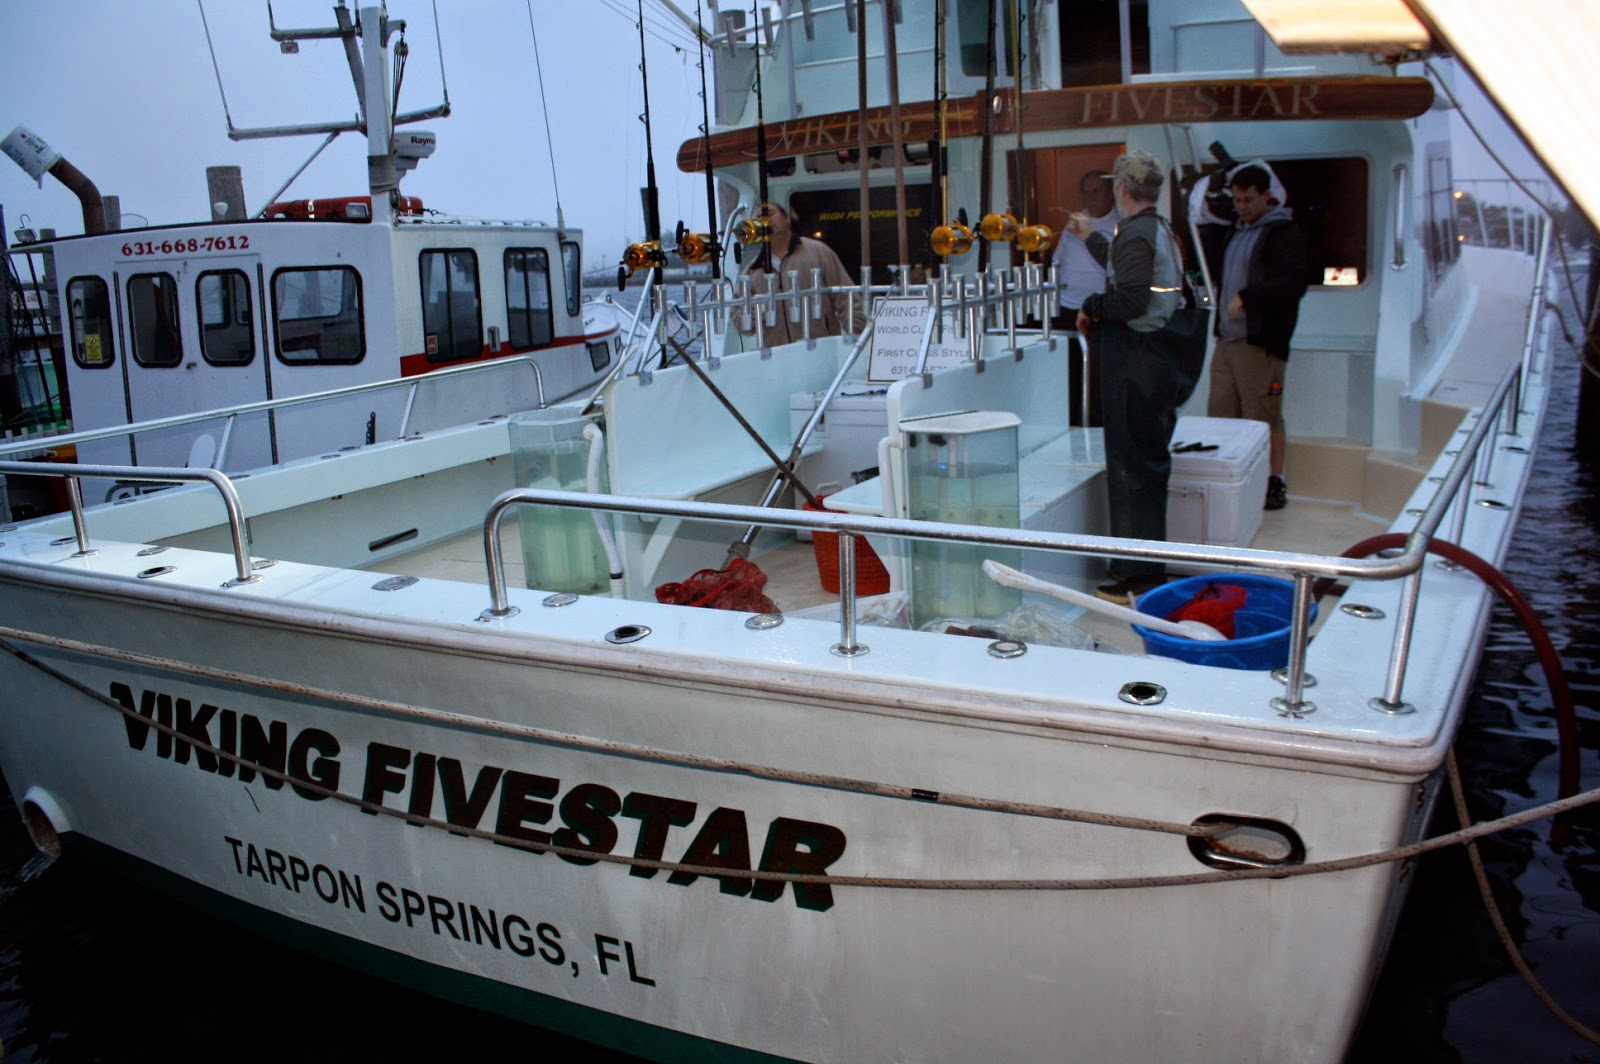 Viking fivestar fishing report day 1 star island yacht for Viking fishing report